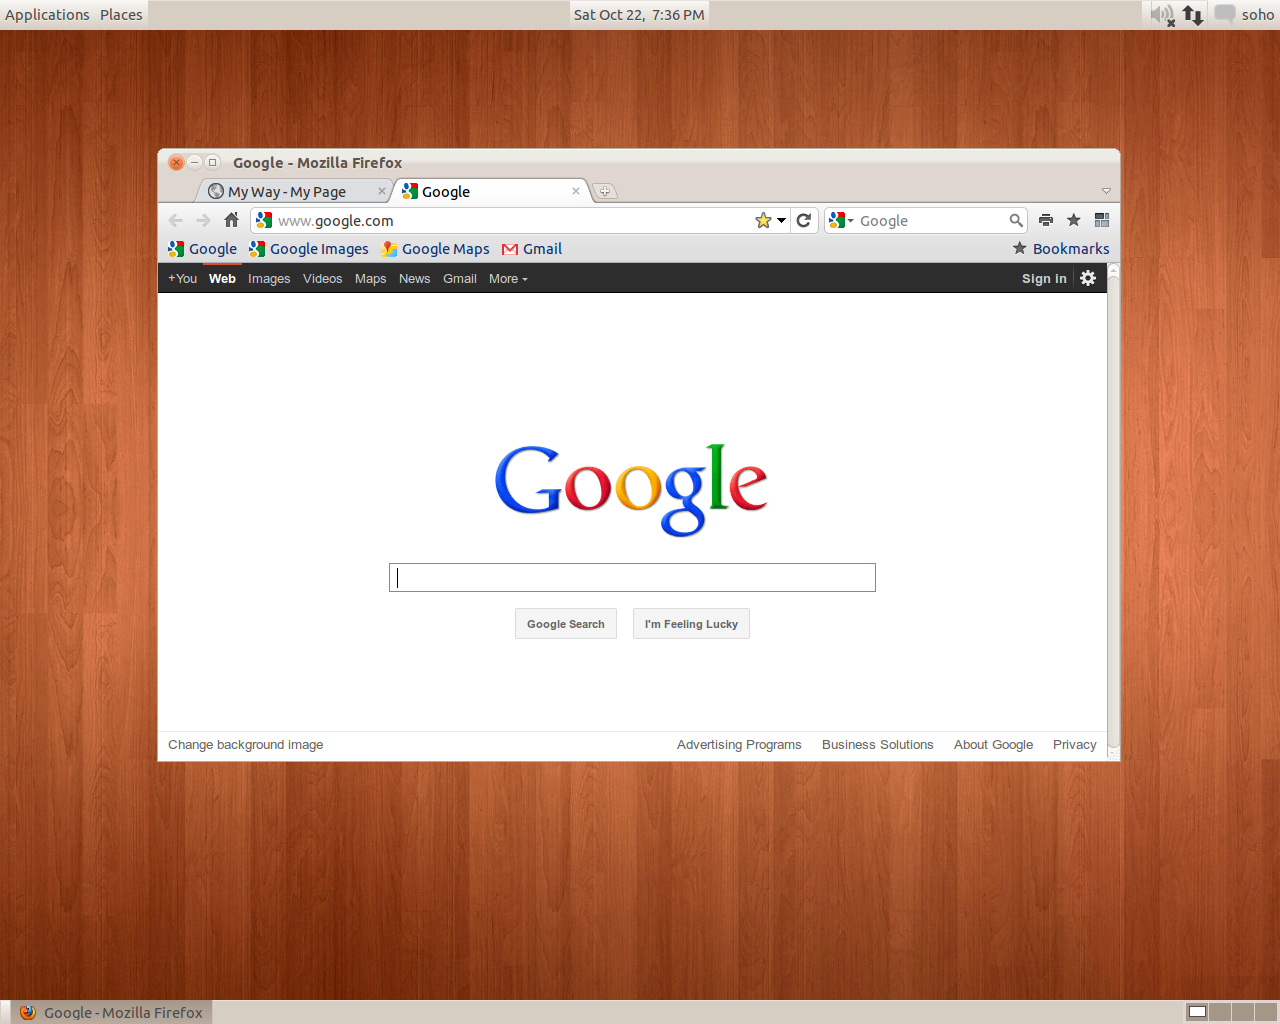 jfn linux project: October 2011